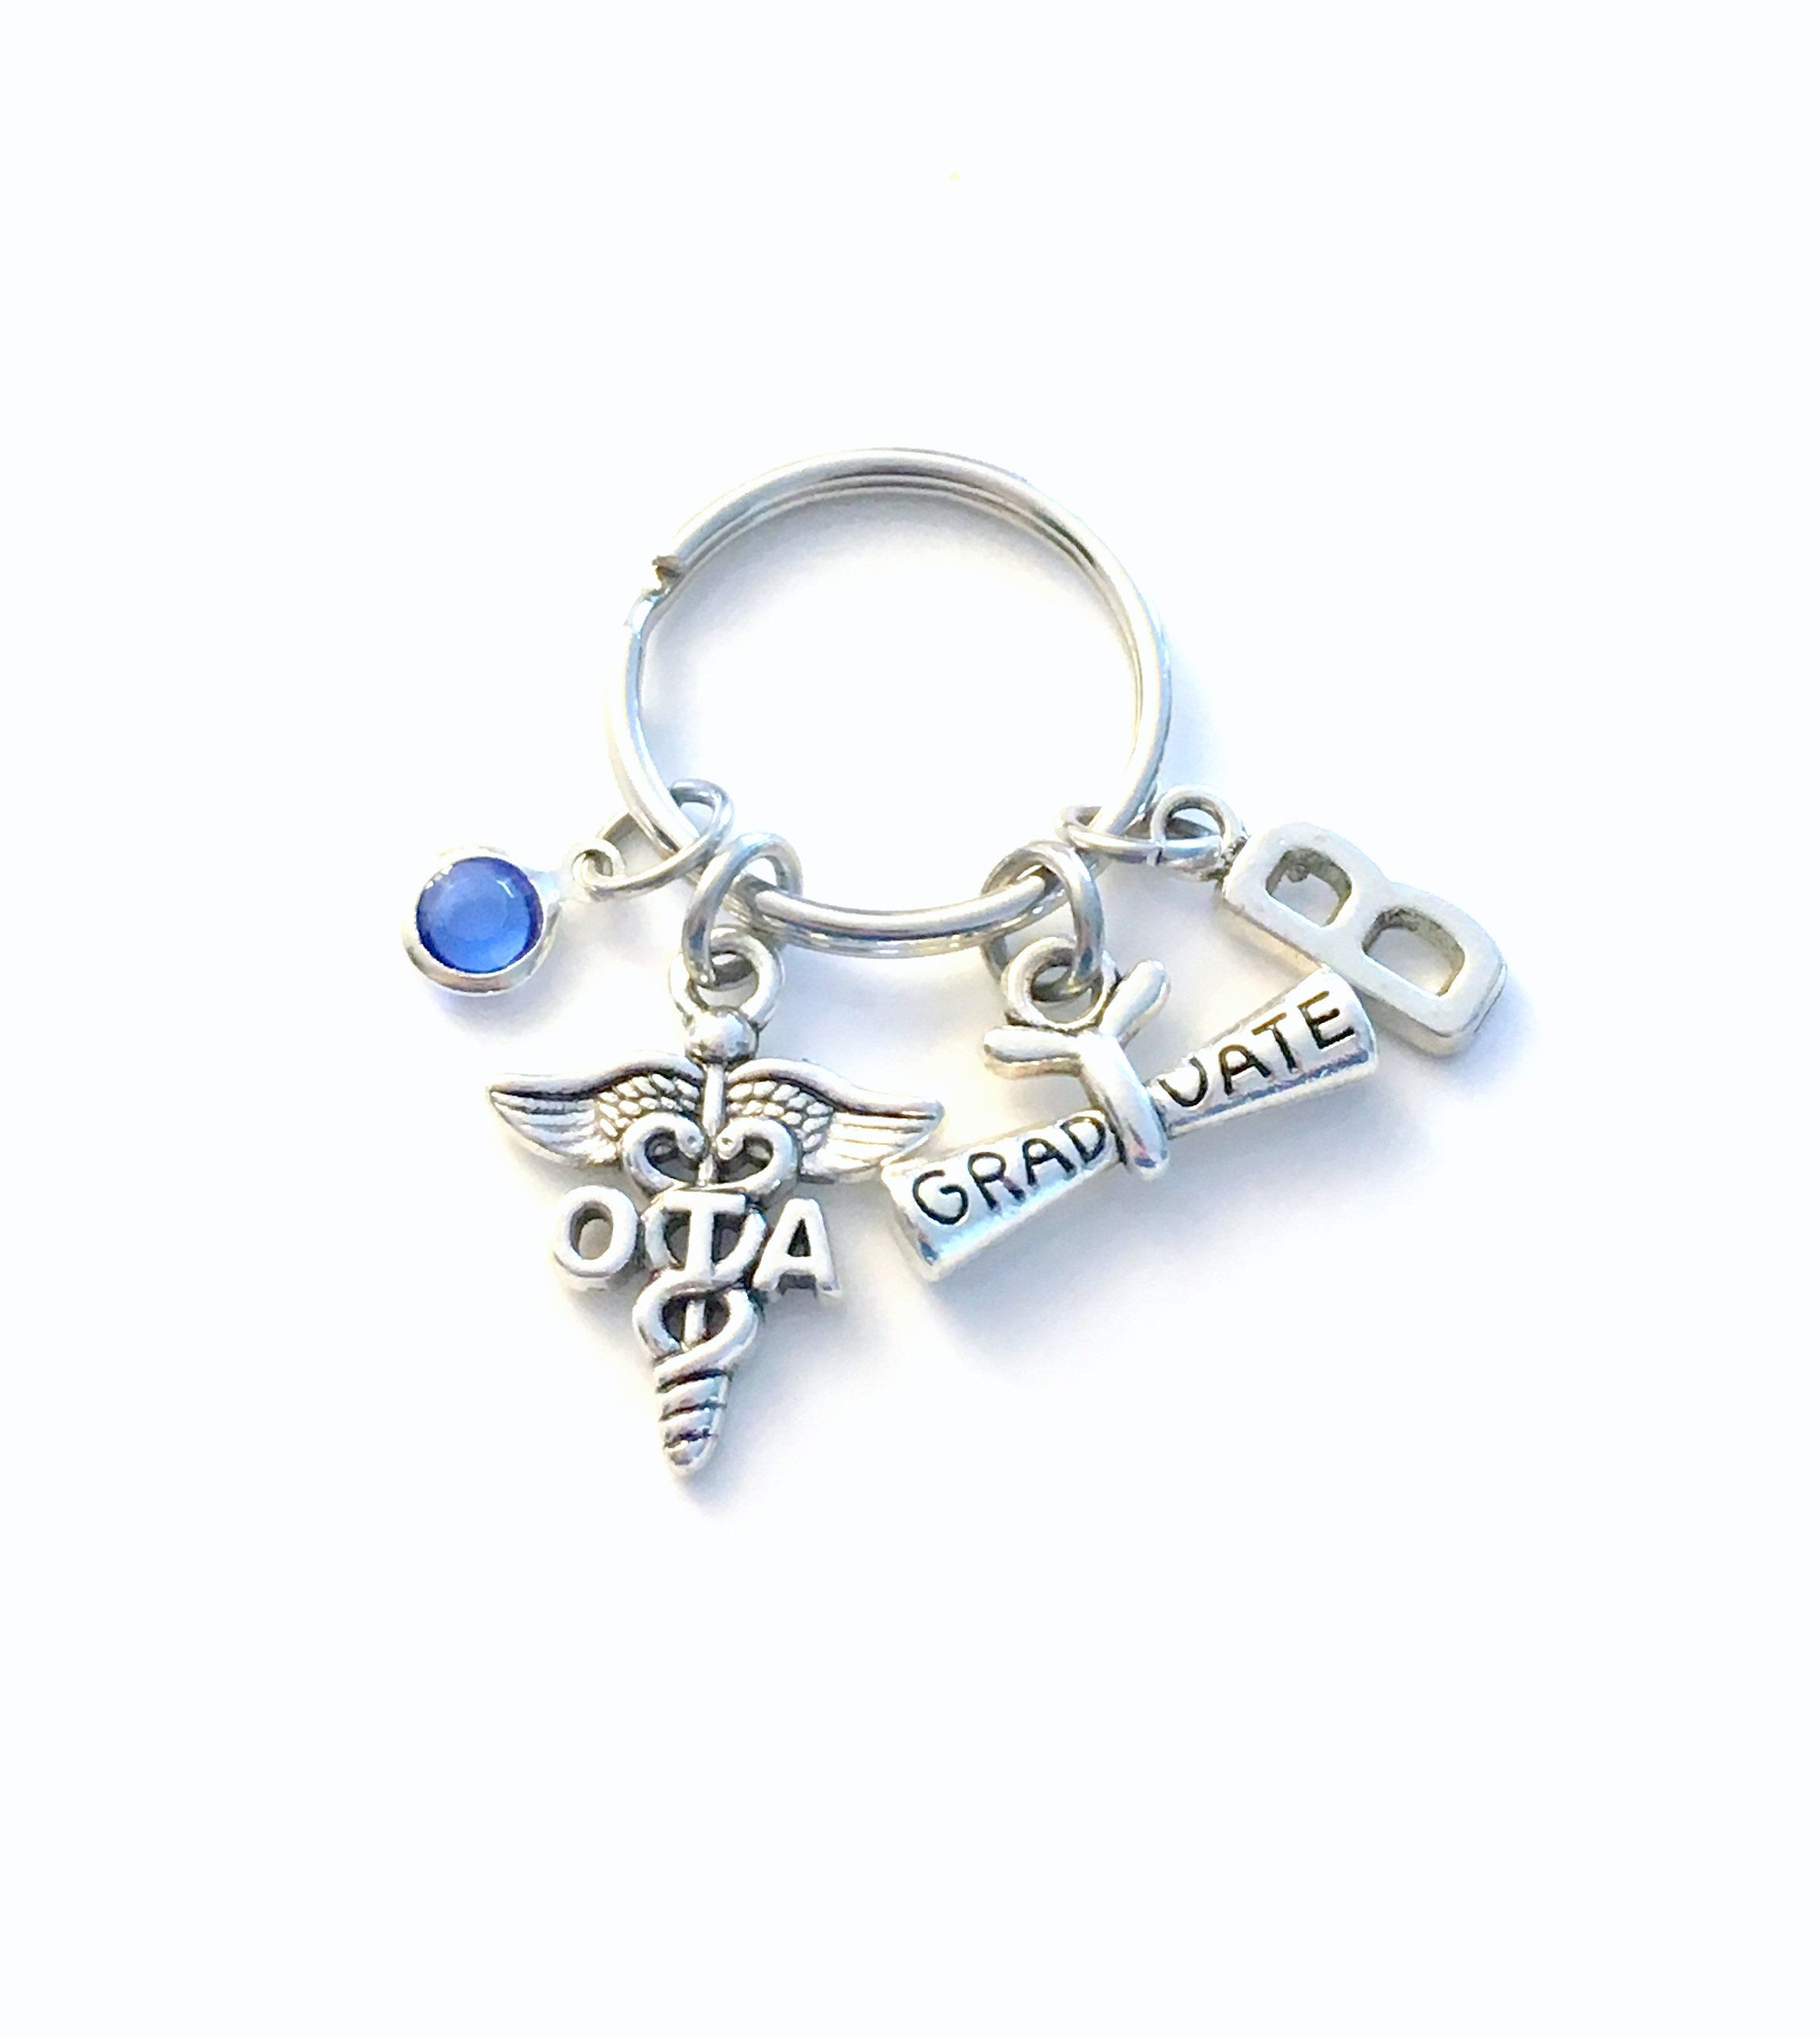 Graduation gift for ota keychain occupational therapy